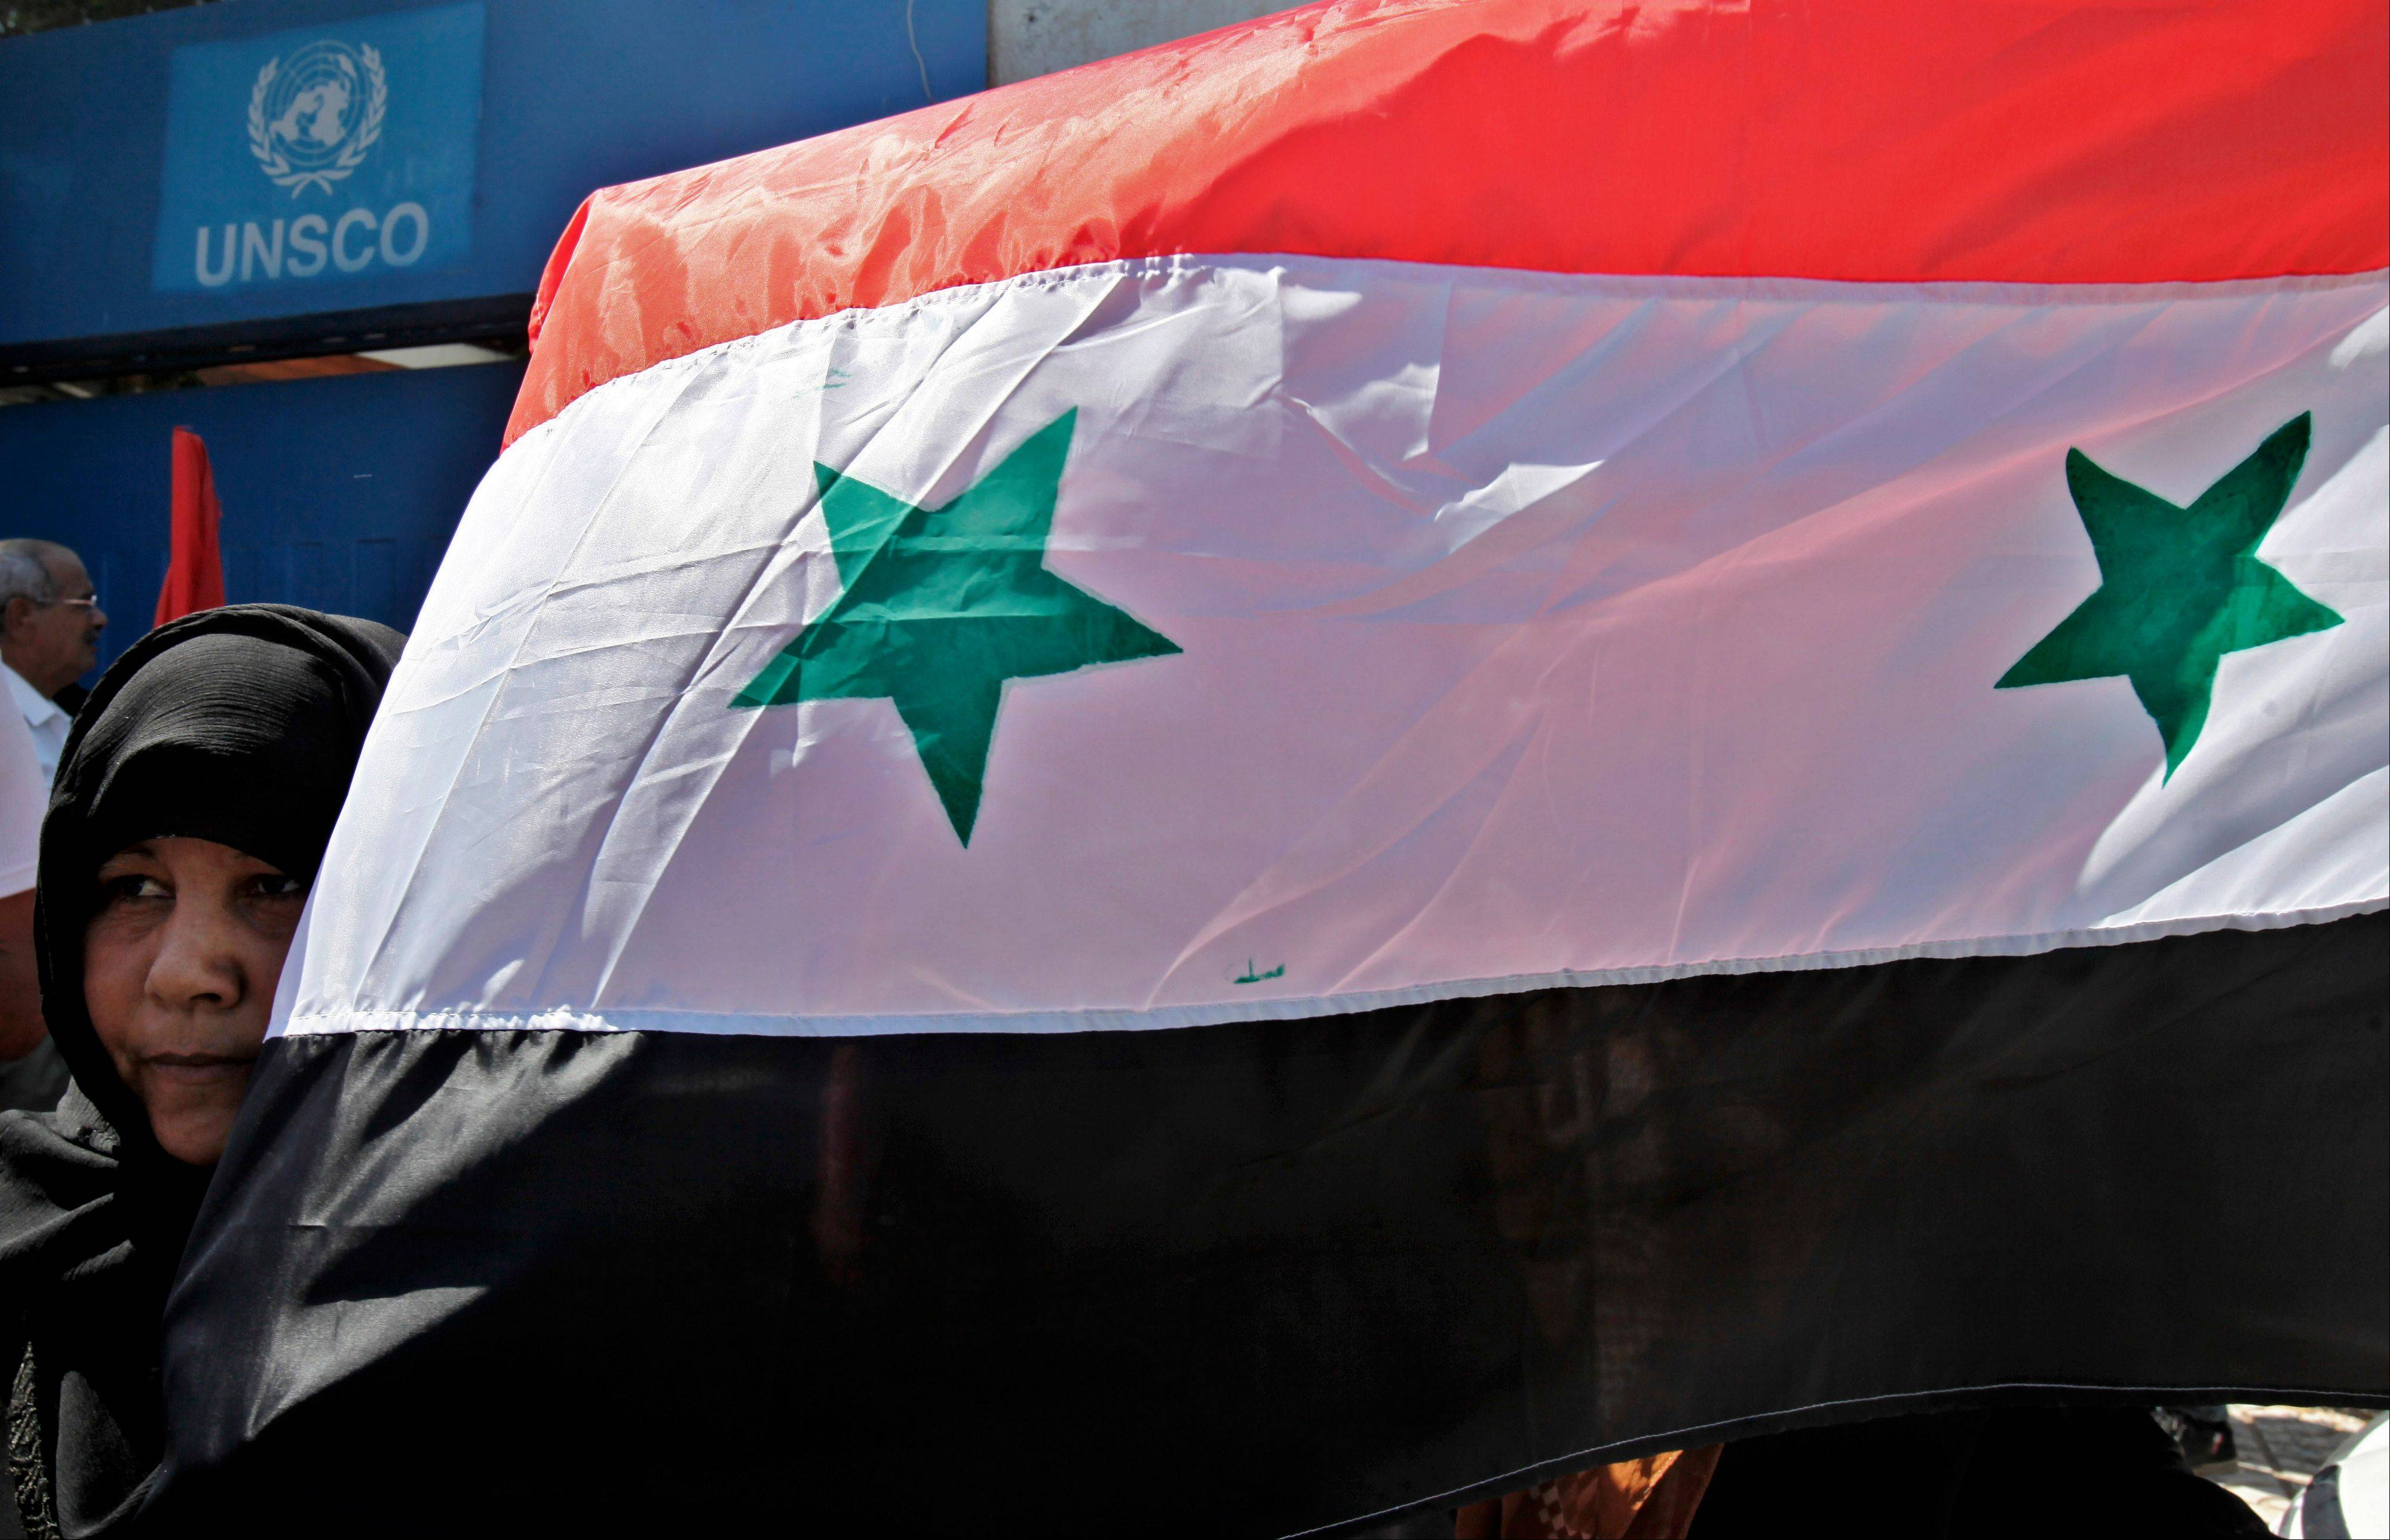 A Palestinian supporter of the Popular Front for the Liberation of Palestine holds a Syrian flag during a protest against a possible military attack by the United States on Syria, in front of the United Nations Special Coordinator for the Middle East Peace Process offices in Gaza City Tuesday.